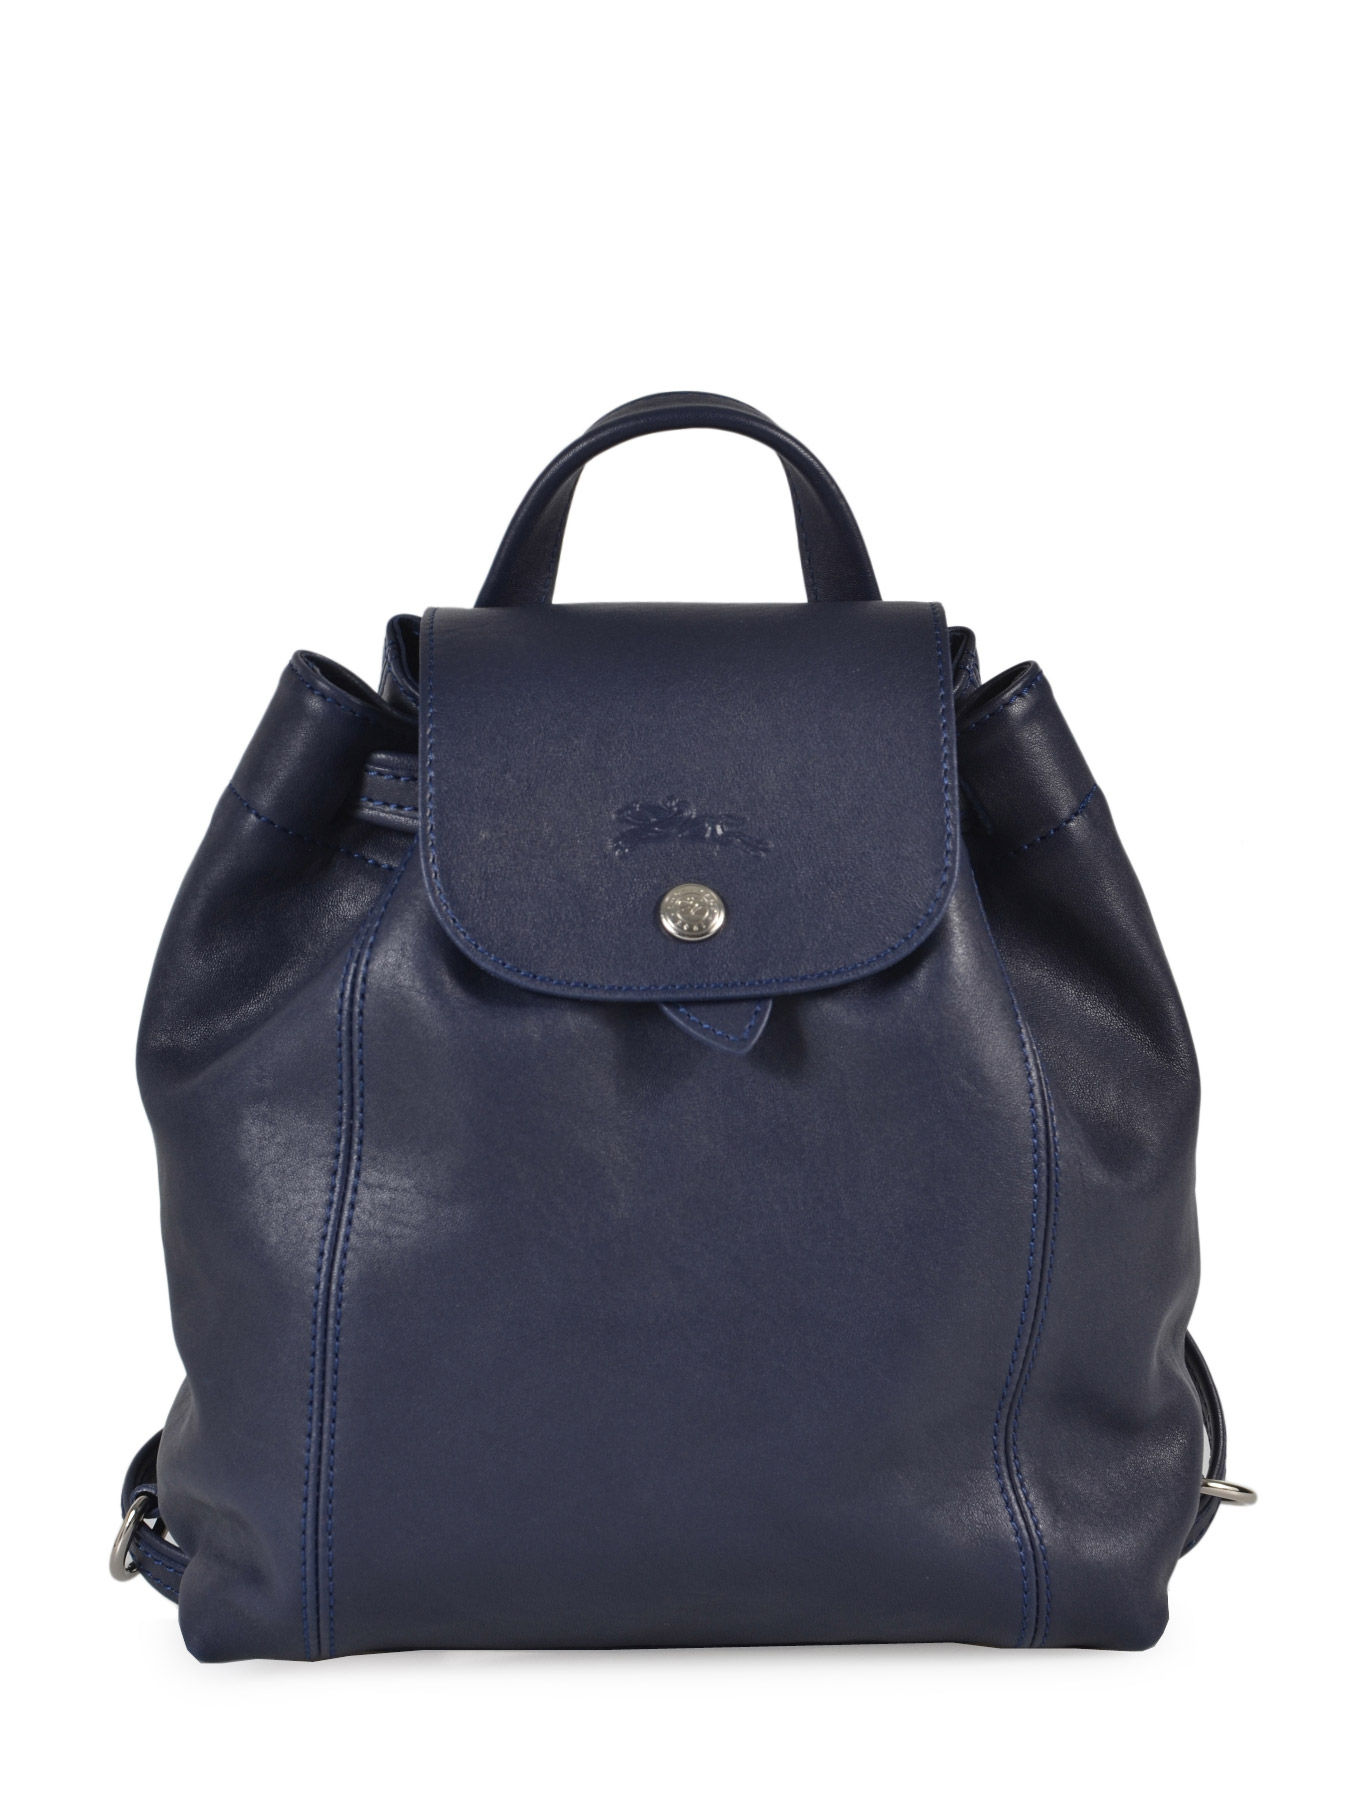 Shopping > longchamps sac a dos femme, Up to 71% OFF